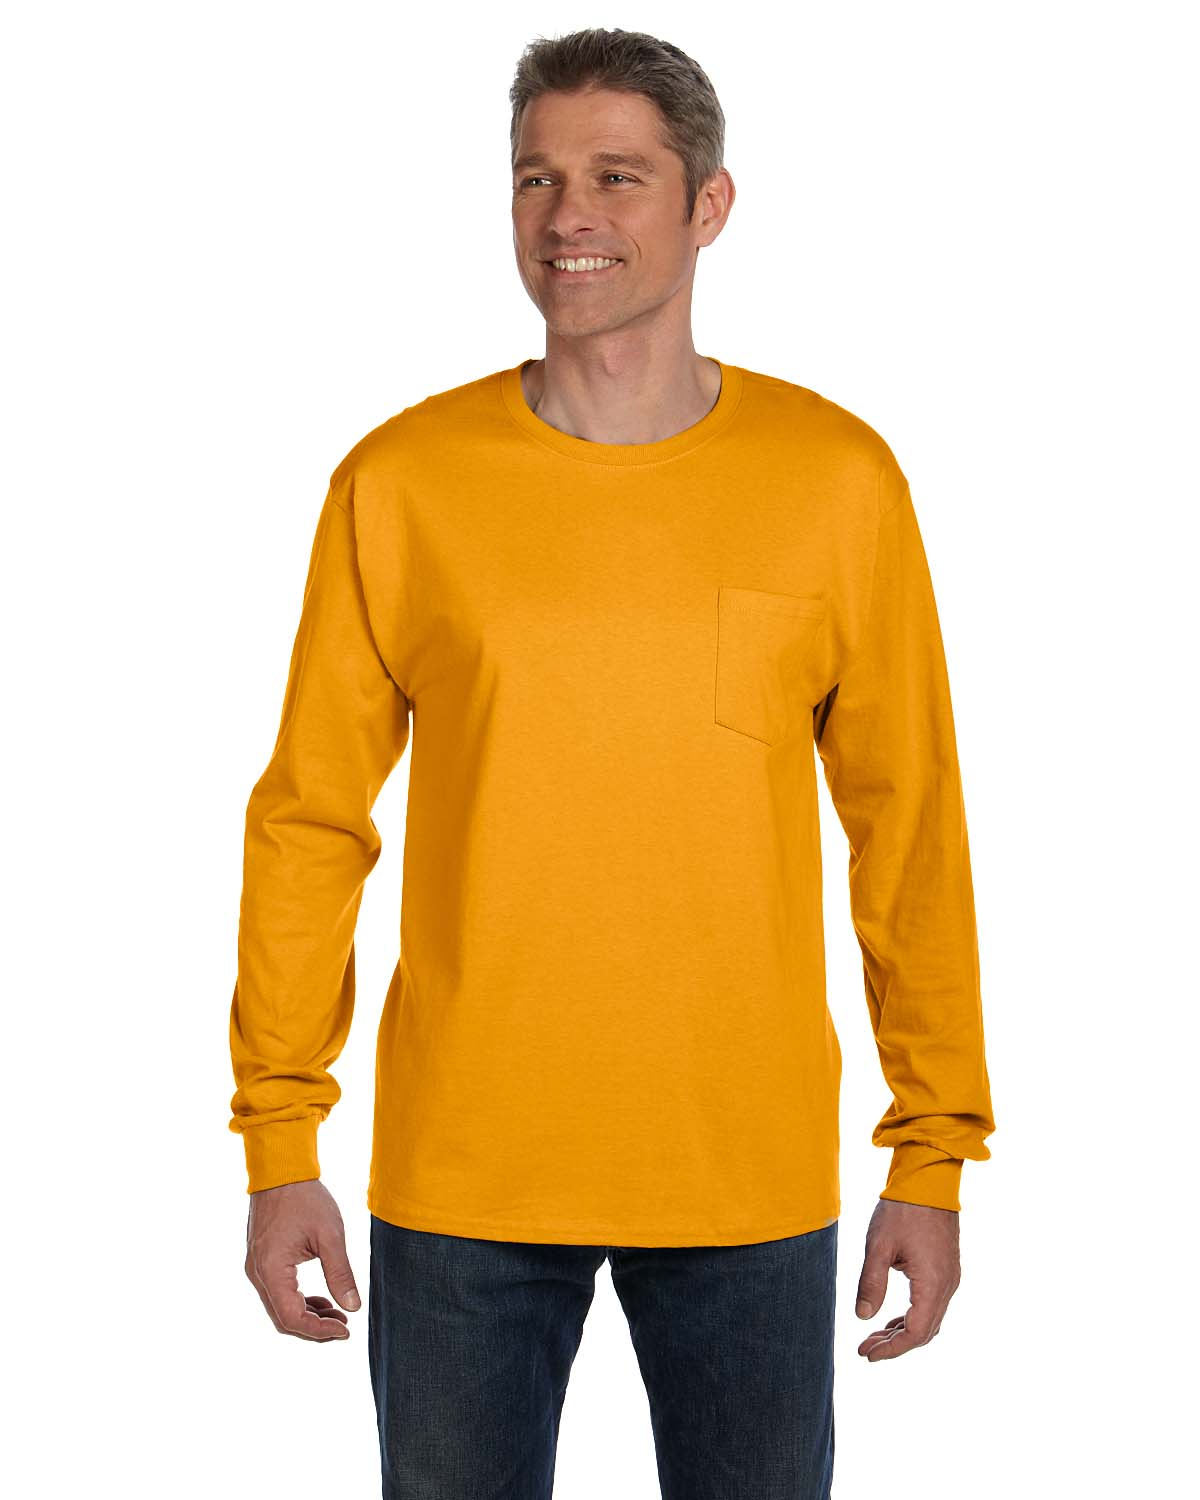 Hanes 6.1 Oz. Tagless® ComfortSoft® Long-Sleeve Pocket T